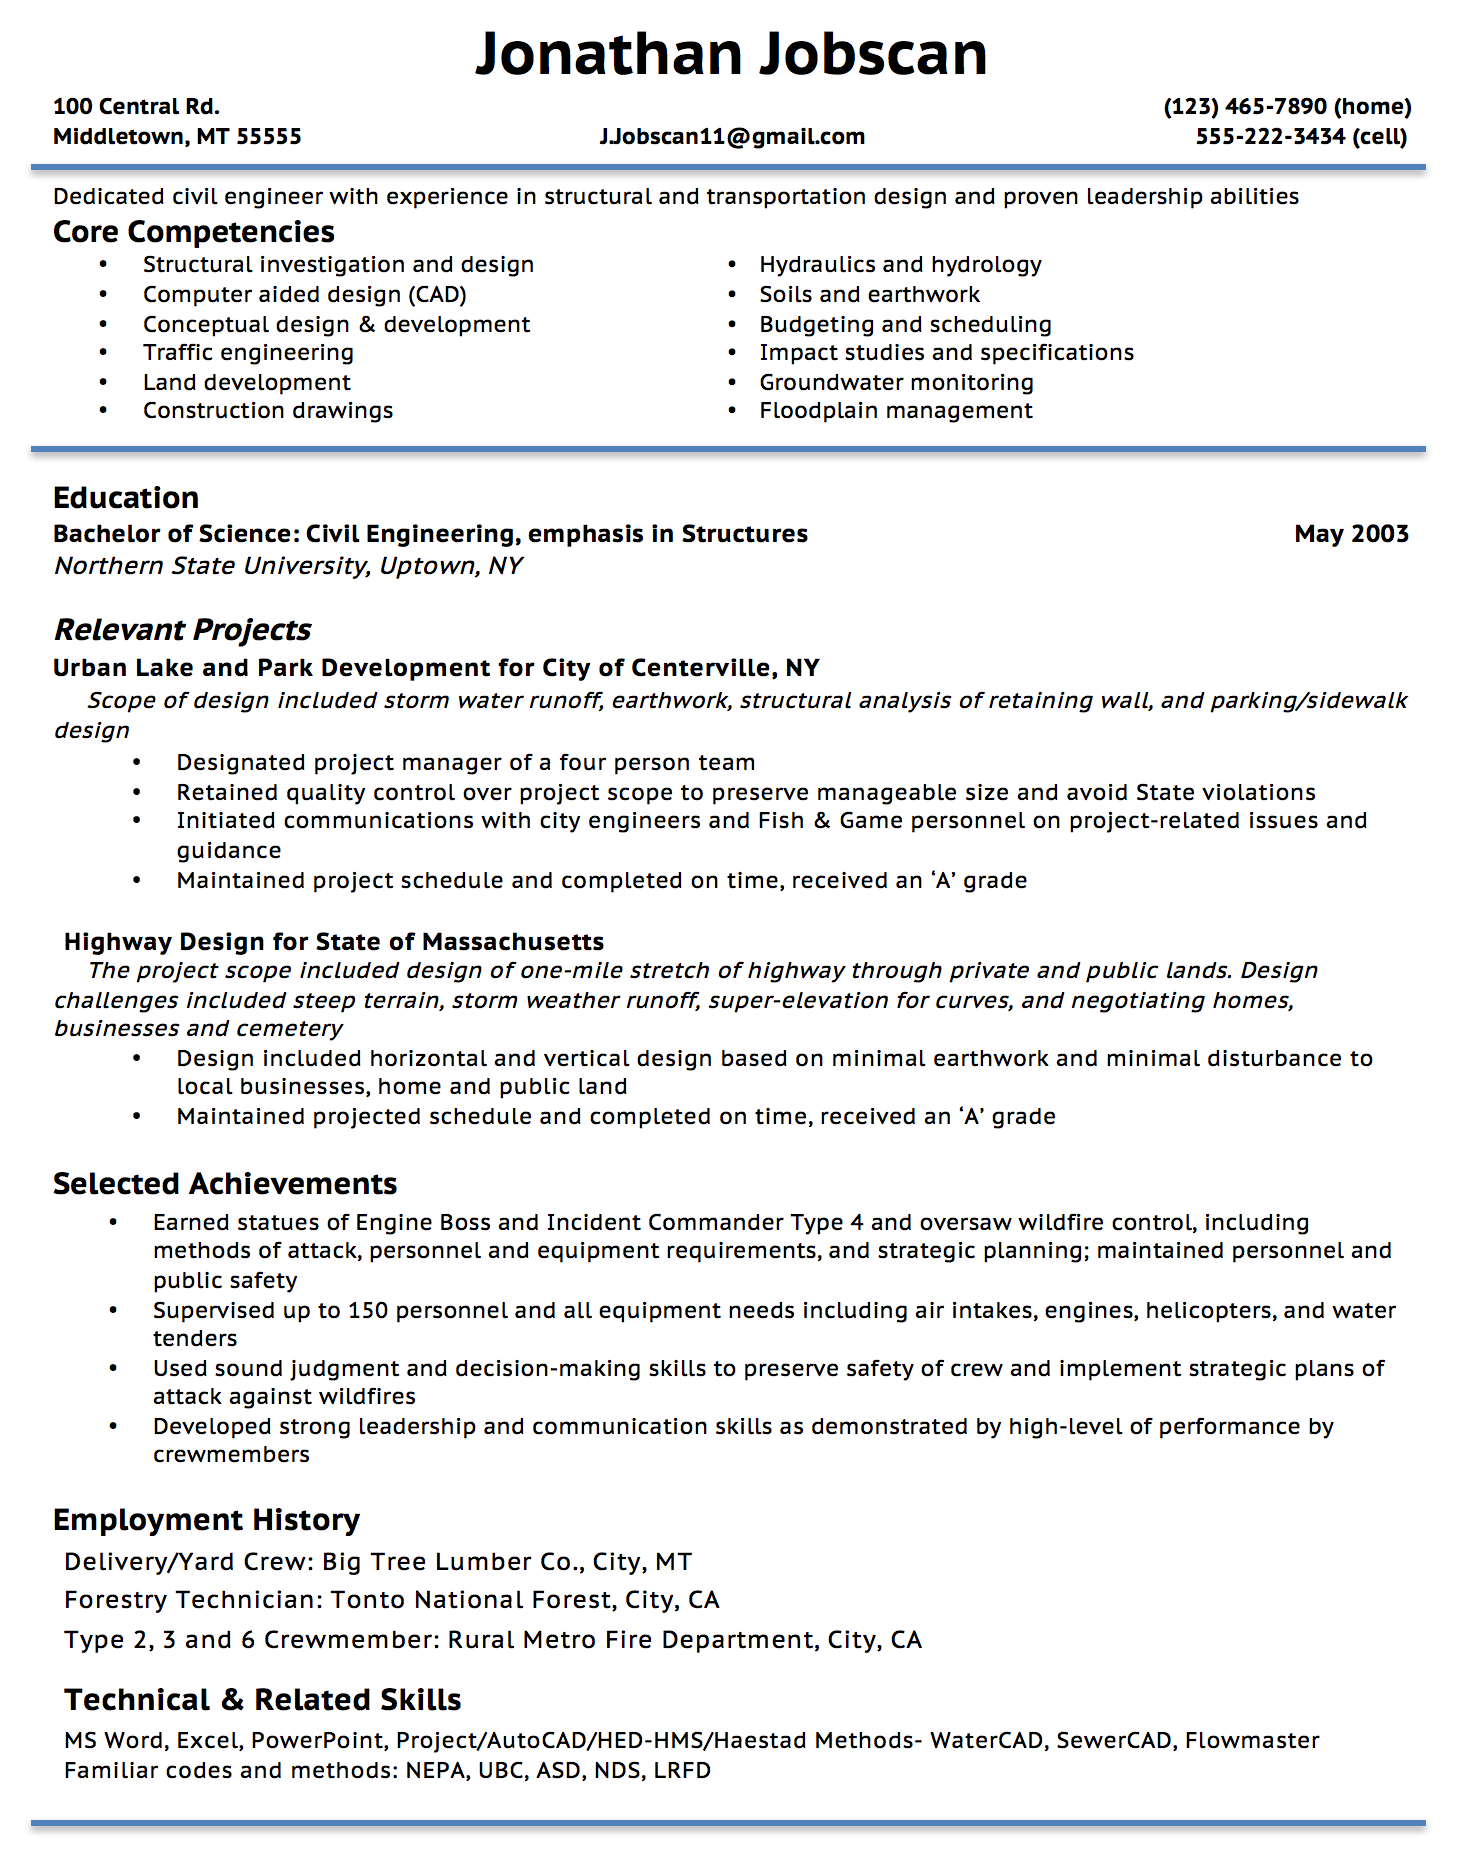 Opposenewapstandardsus  Scenic Resume Writing Guide  Jobscan With Great Example Of A Functional Resume Format With Astounding Driver Resume Also Job Objective For Resume In Addition Resume Microsoft Word And Correctional Officer Resume As Well As Developer Resume Additionally What A Good Resume Looks Like From Jobscanco With Opposenewapstandardsus  Great Resume Writing Guide  Jobscan With Astounding Example Of A Functional Resume Format And Scenic Driver Resume Also Job Objective For Resume In Addition Resume Microsoft Word From Jobscanco